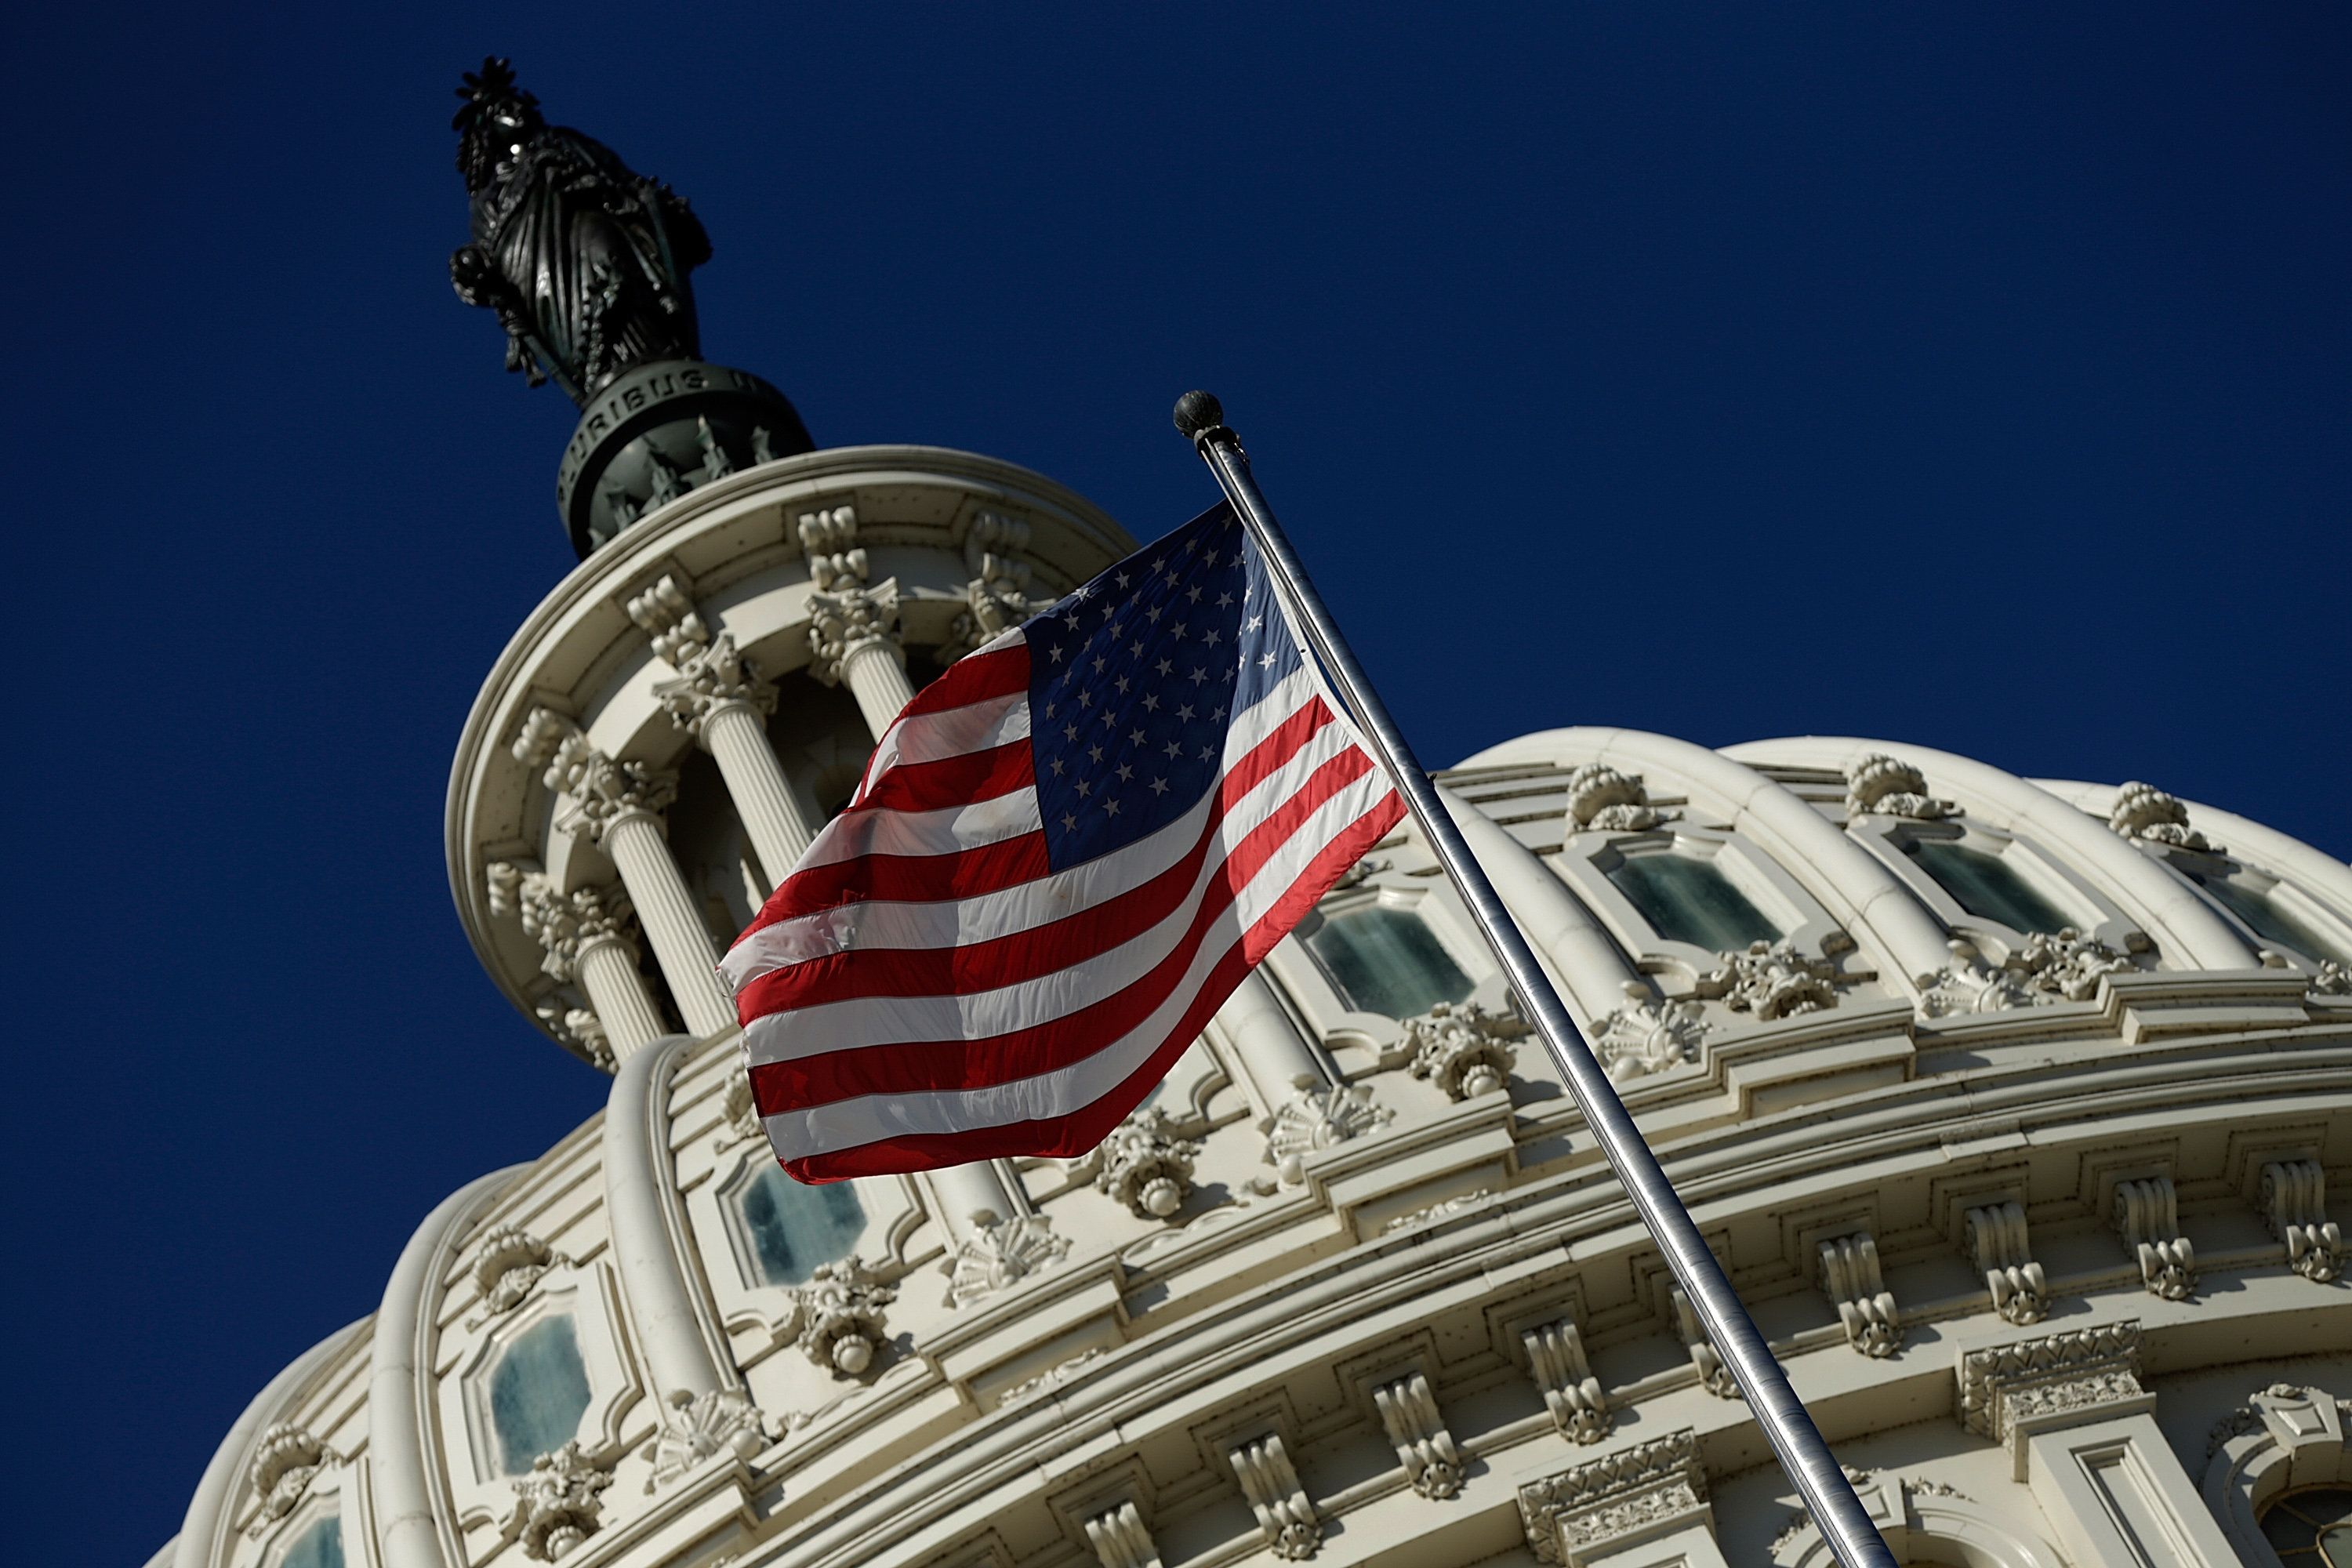 Republicans have put a provision in an appropriations billto block the Federal Communications Commission from enforcing